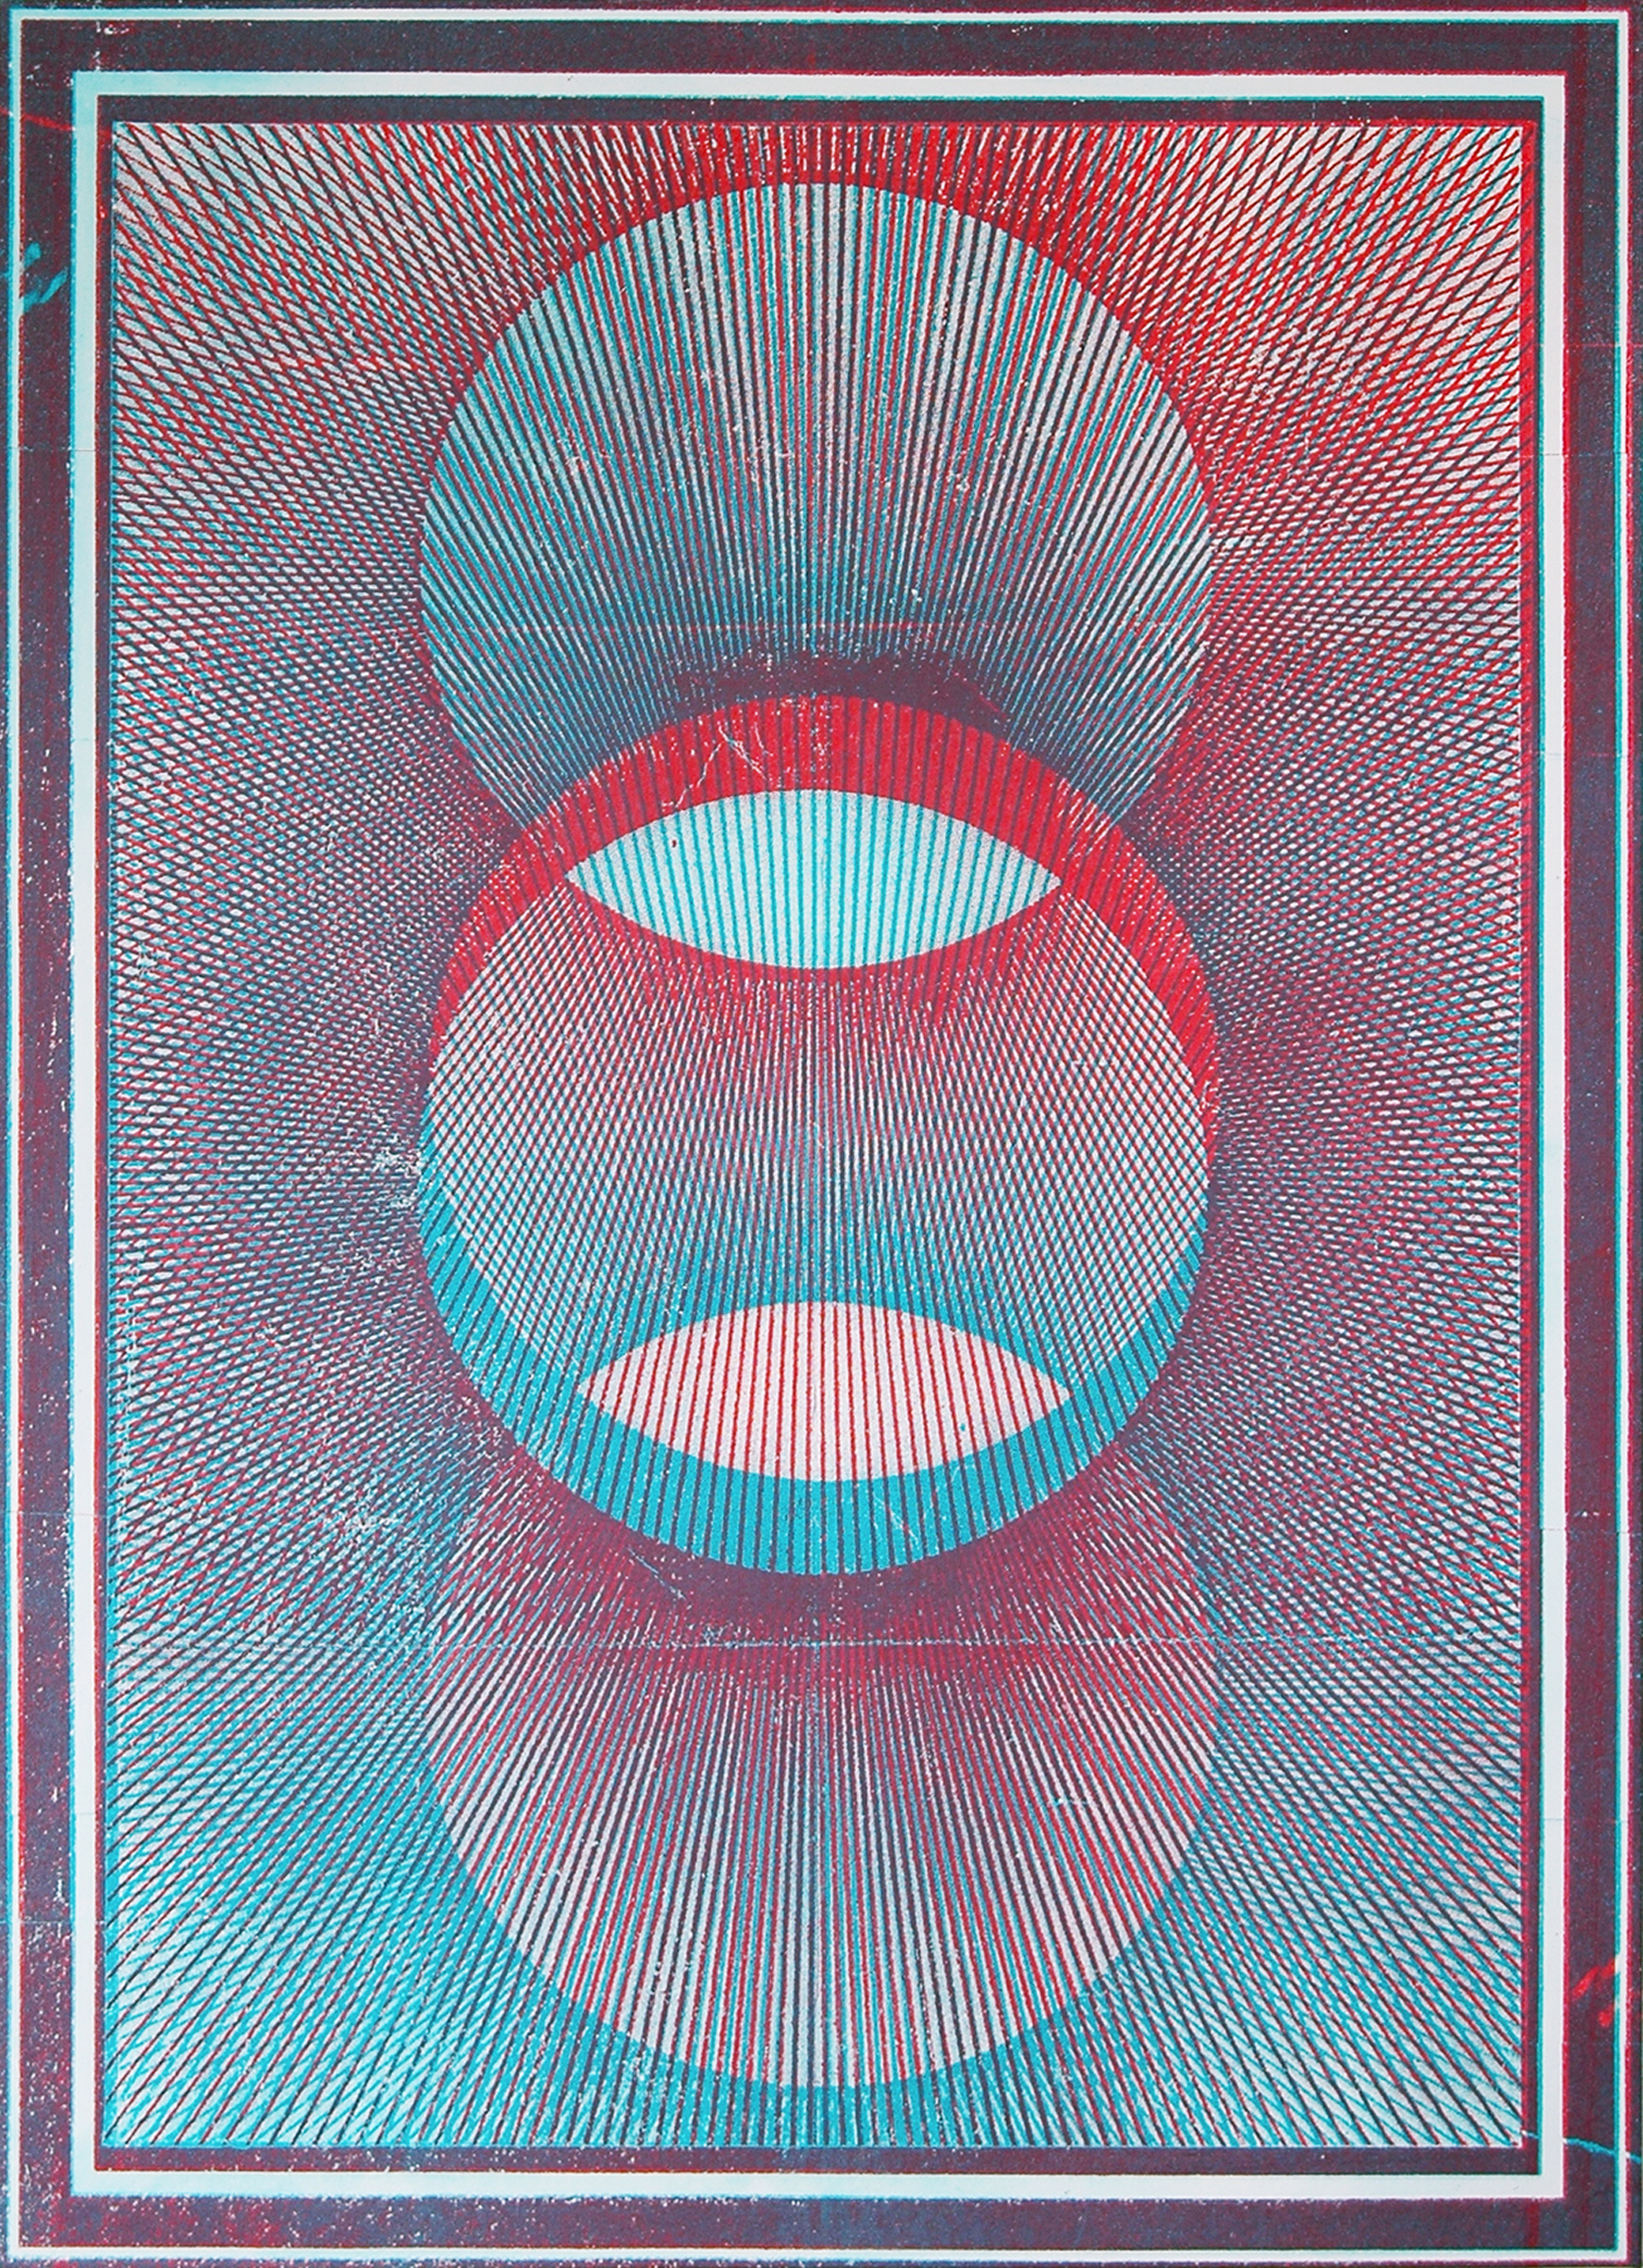 "GWENAËL RATTKE  Projections II (red & blue) , 2012 acrylic and silkscreen with hand working on canvas, 48.25"" x 34.75"""